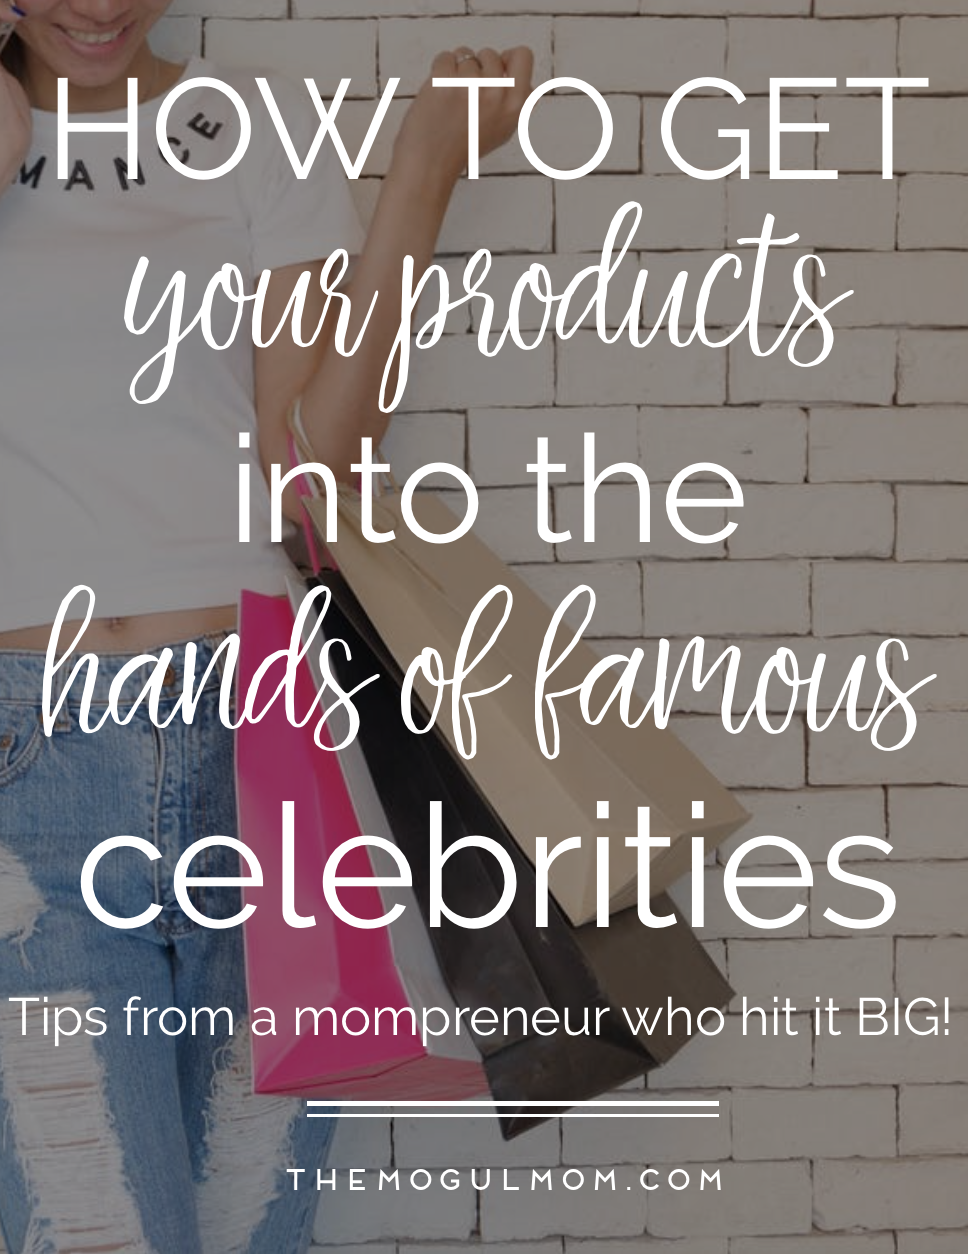 How to get your product into celebrity hands